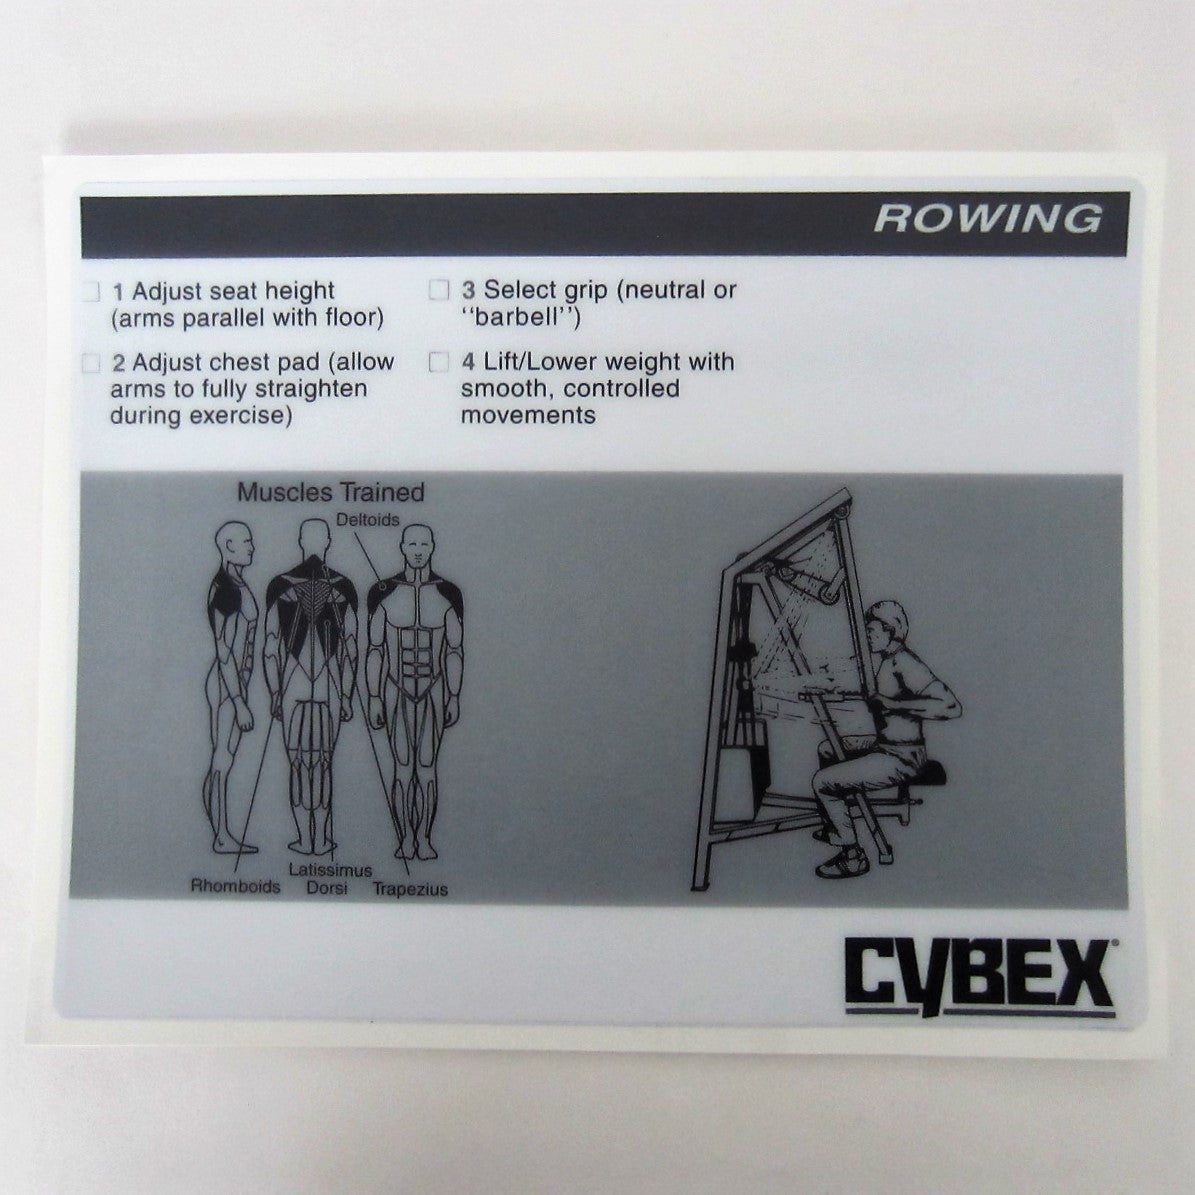 Cybex Classic Rowing